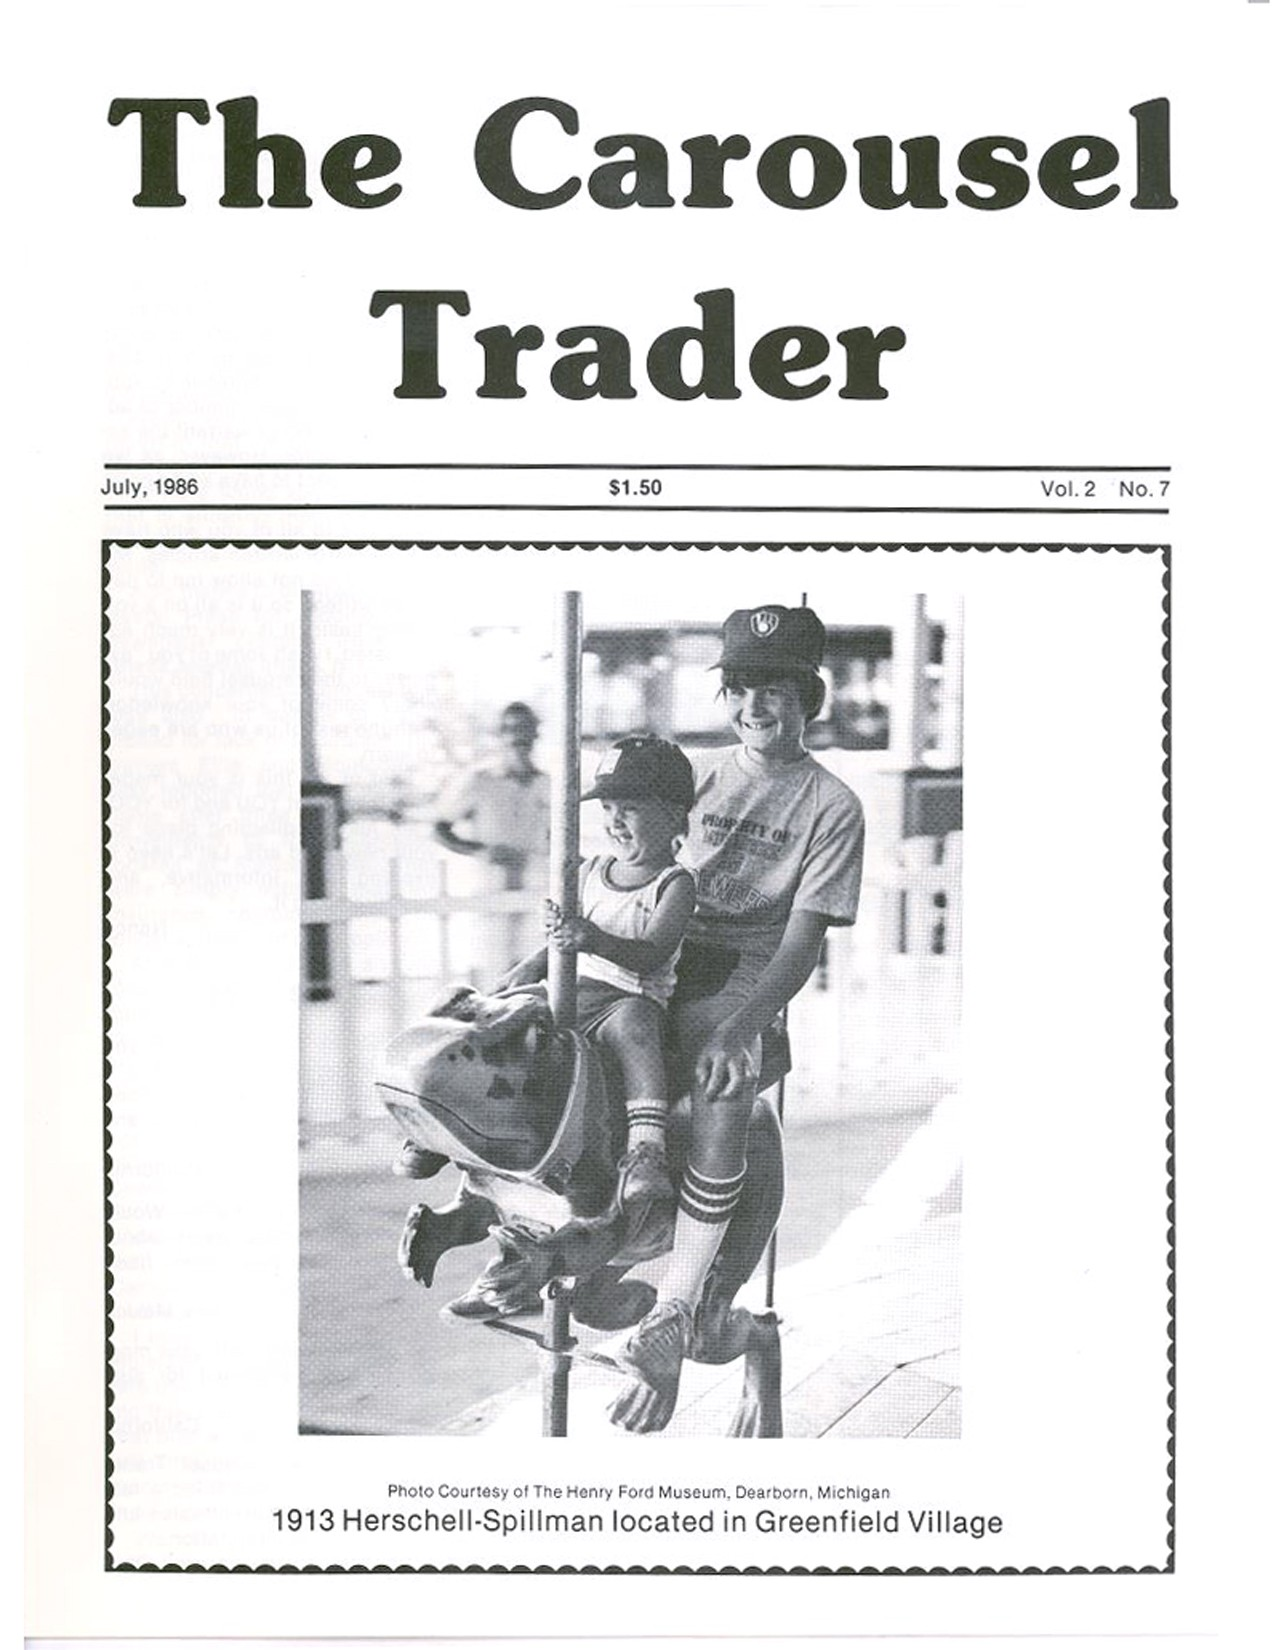 Carousel-News-07_1986-cover-Henry-Ford-Museump-Greenfield-Village